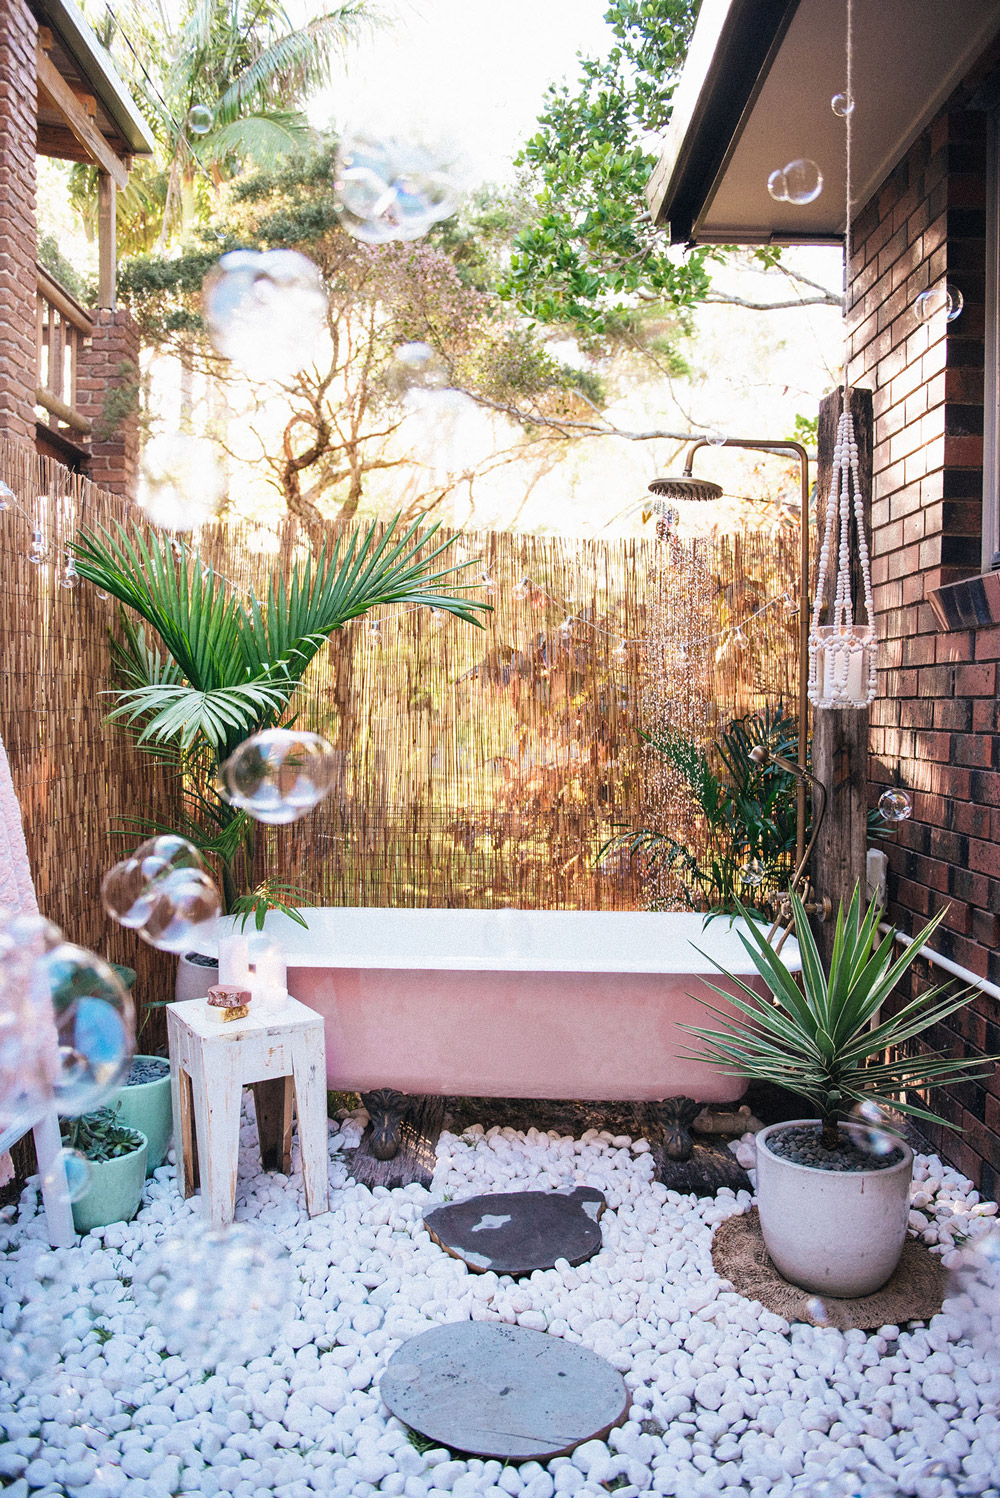 Bath Among Pebbles Outside Shower Ideas - 50 stunning outdoor shower spaces that take you to urban paradise